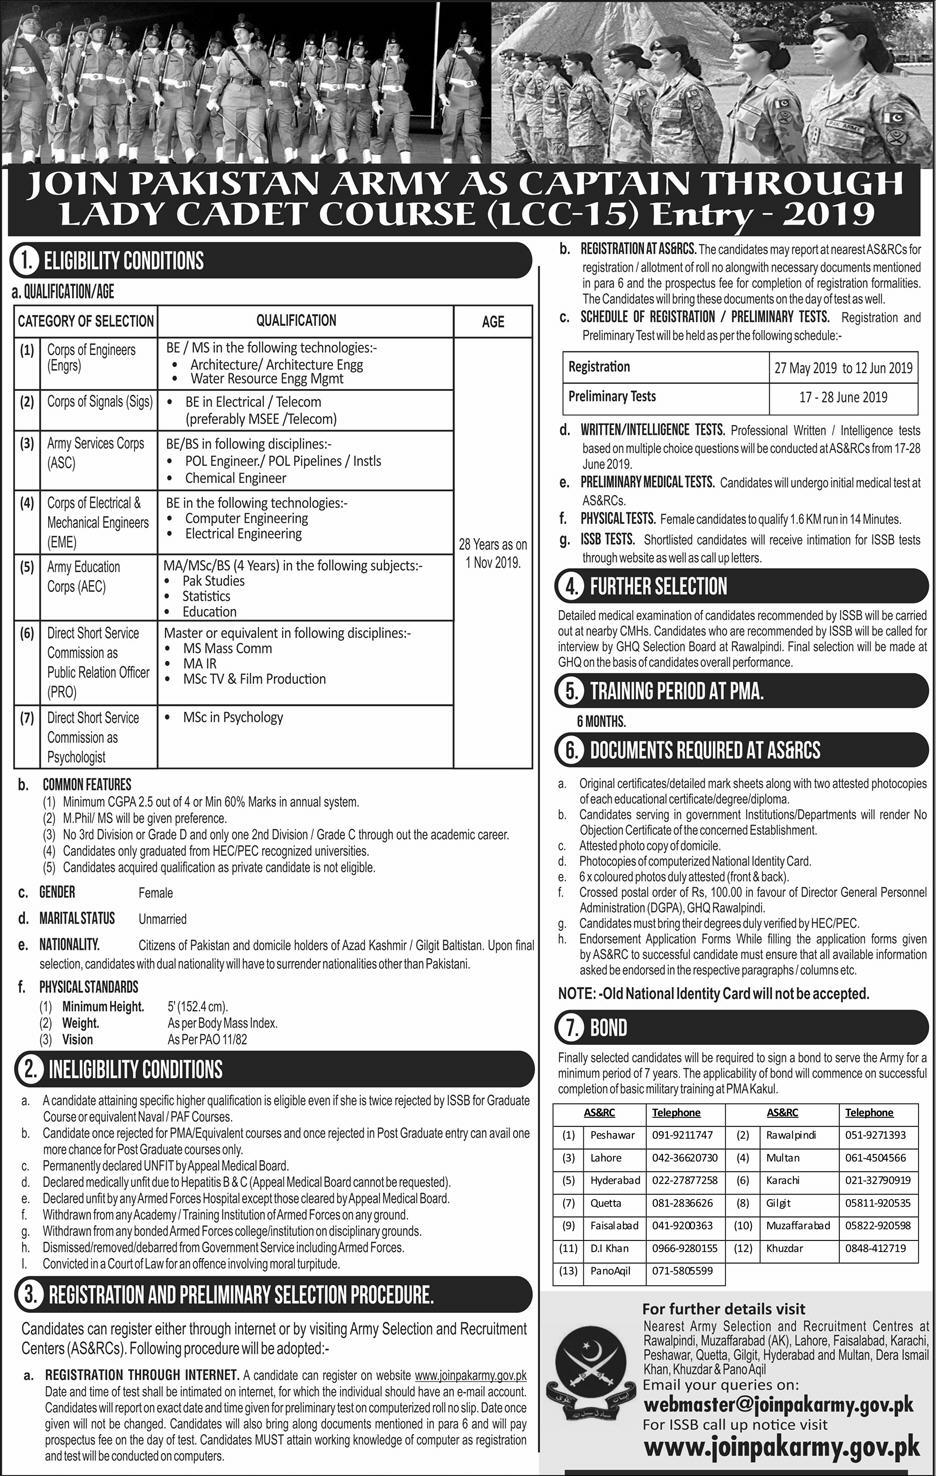 Join Pakistan Army As Captain through Lady Cadet Course 2019 - Jobs